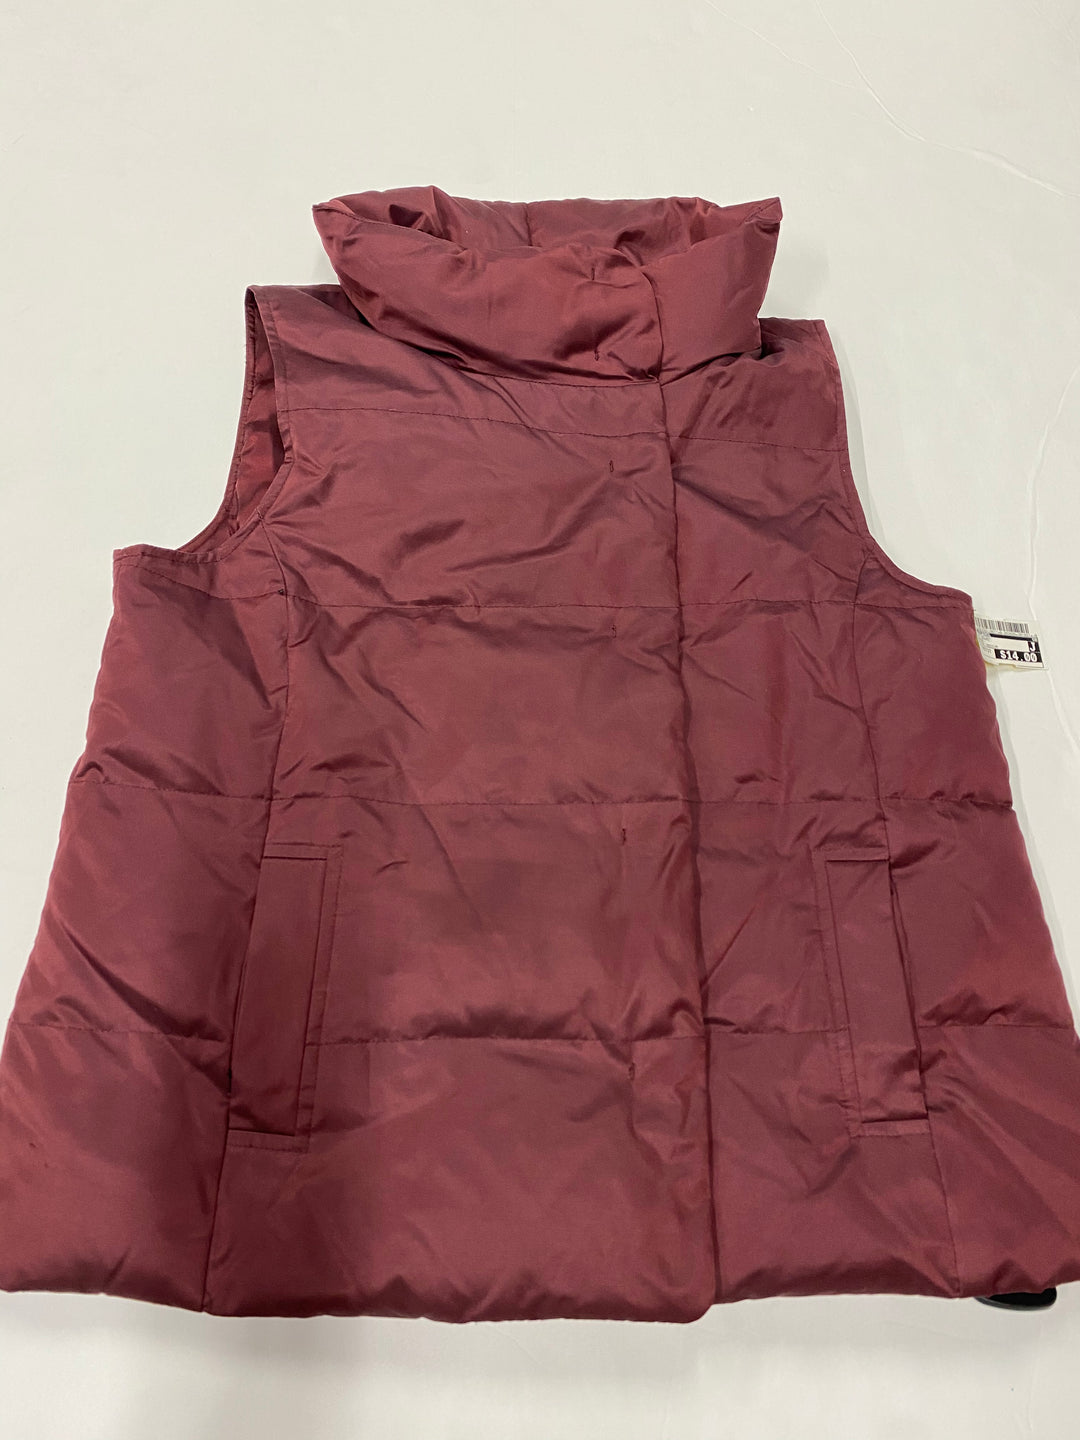 Primary Photo - BRAND: J JILL <BR>STYLE: VEST DOWN <BR>COLOR: MAROON <BR>SIZE: PETITE  MEDIUM <BR>SKU: 200-200178-19977